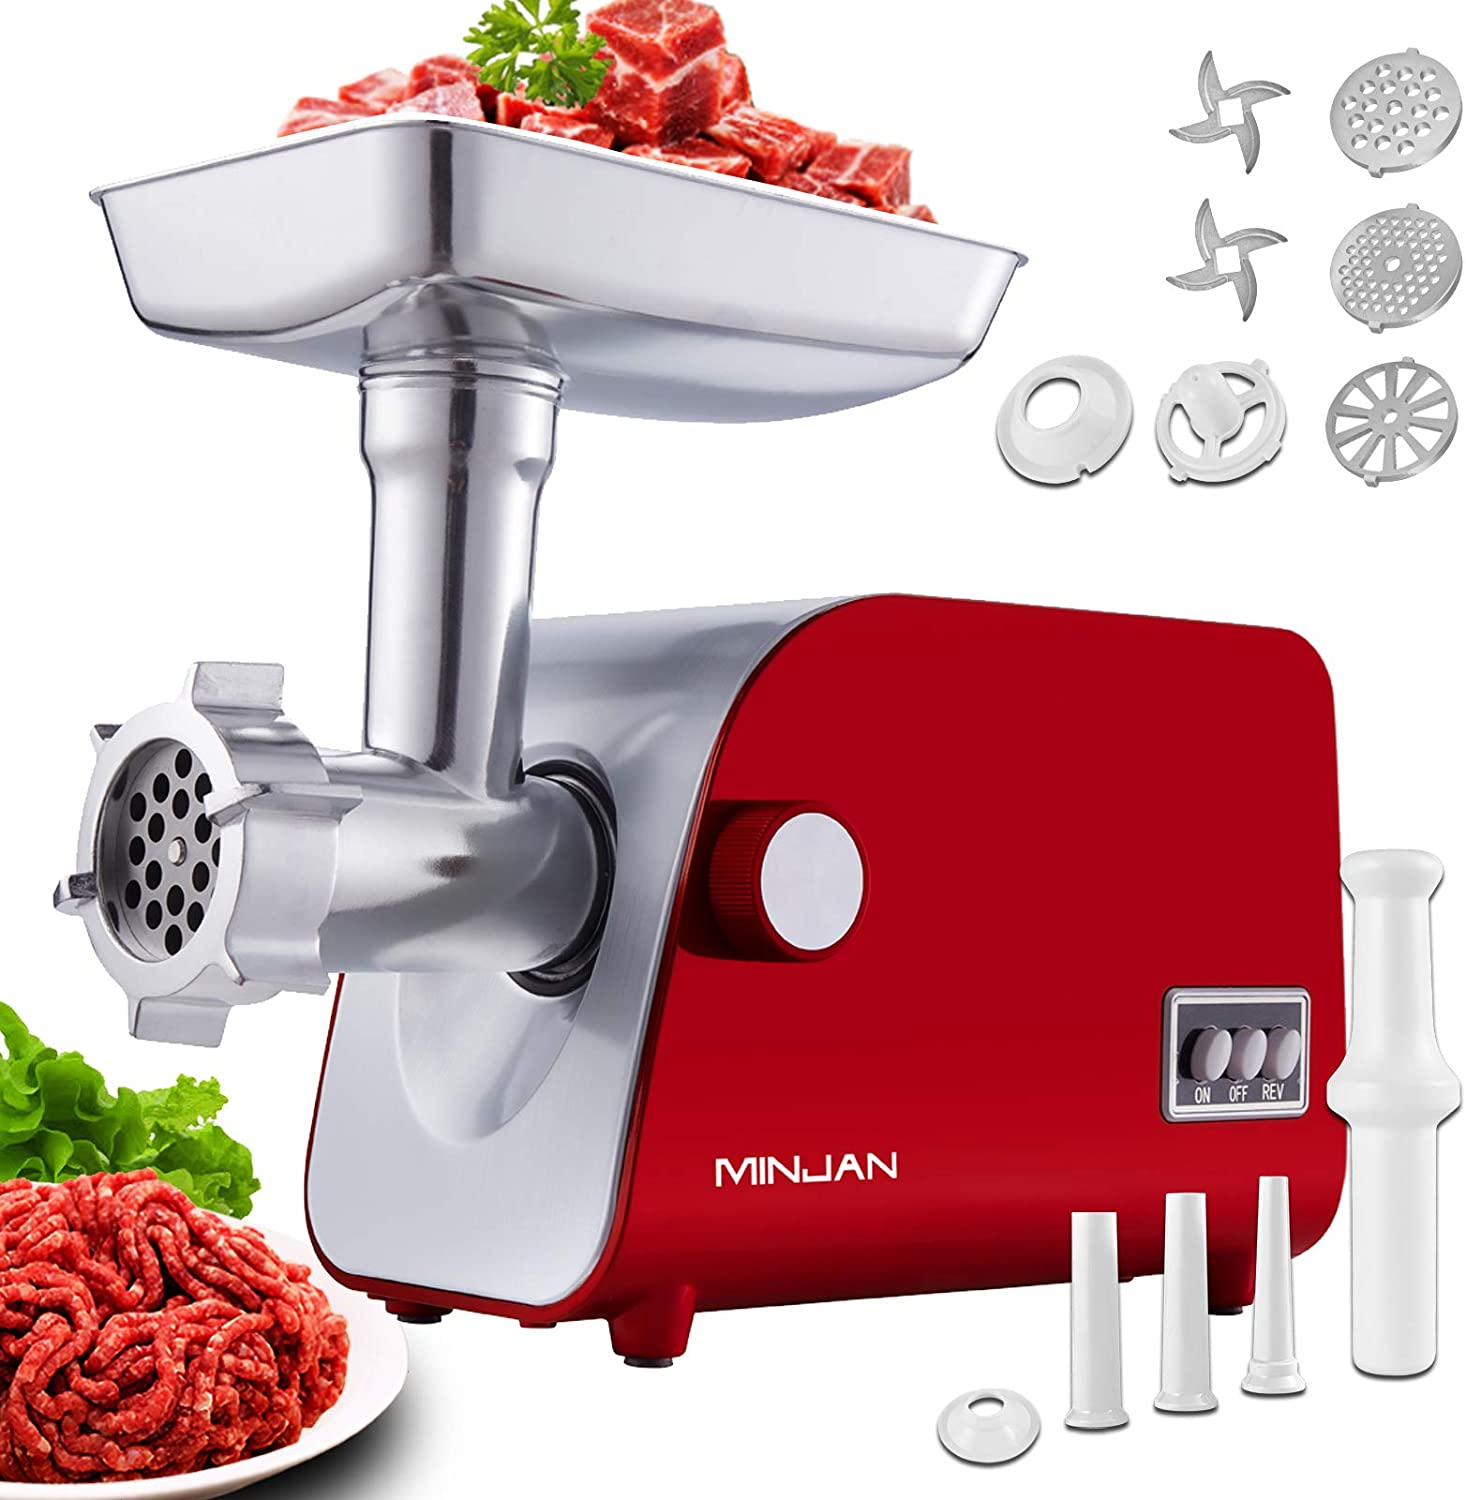 Electric Meat Grinder, Meat Mincer & Sausage Stuffer, 5LB/Min, All-Copper Motor 1800W Max, 3 Sizes Stainless Steel Grinding Plates 2 Blades, Kubbe Maker Food Grinder for Home Use (Red)